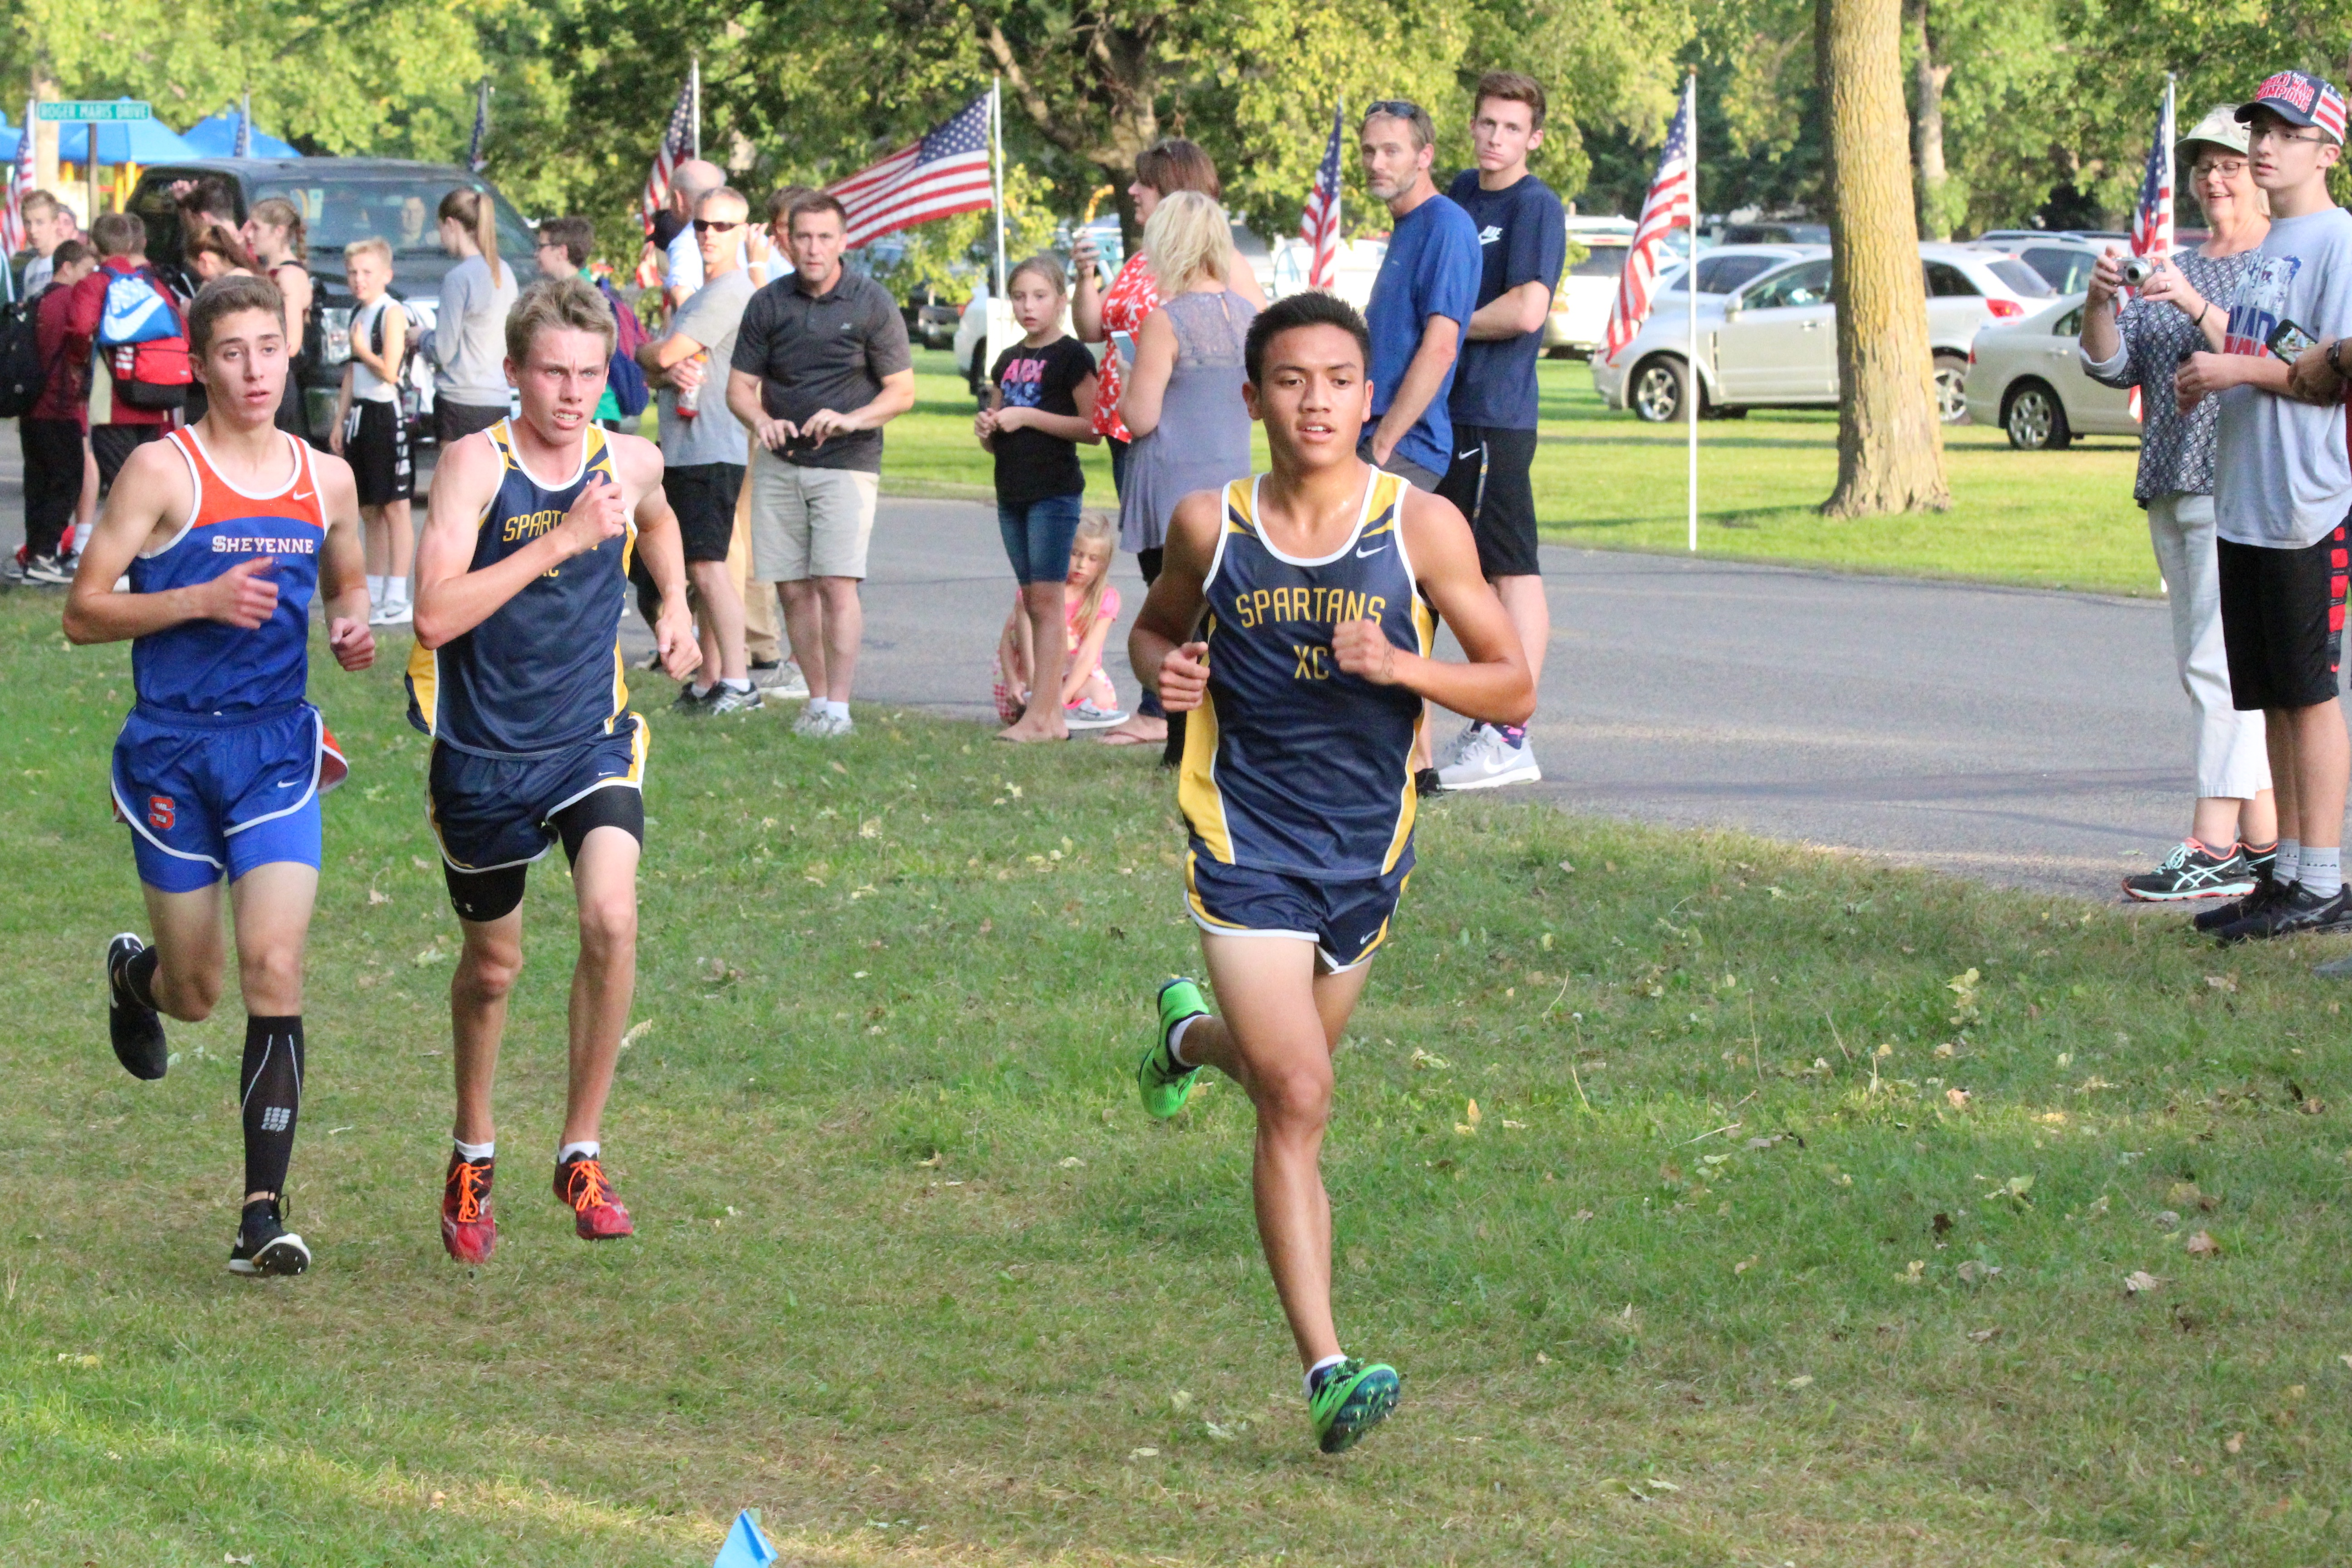 Anna Bernhardt cross country runners lineup to race at andrew nelson metro